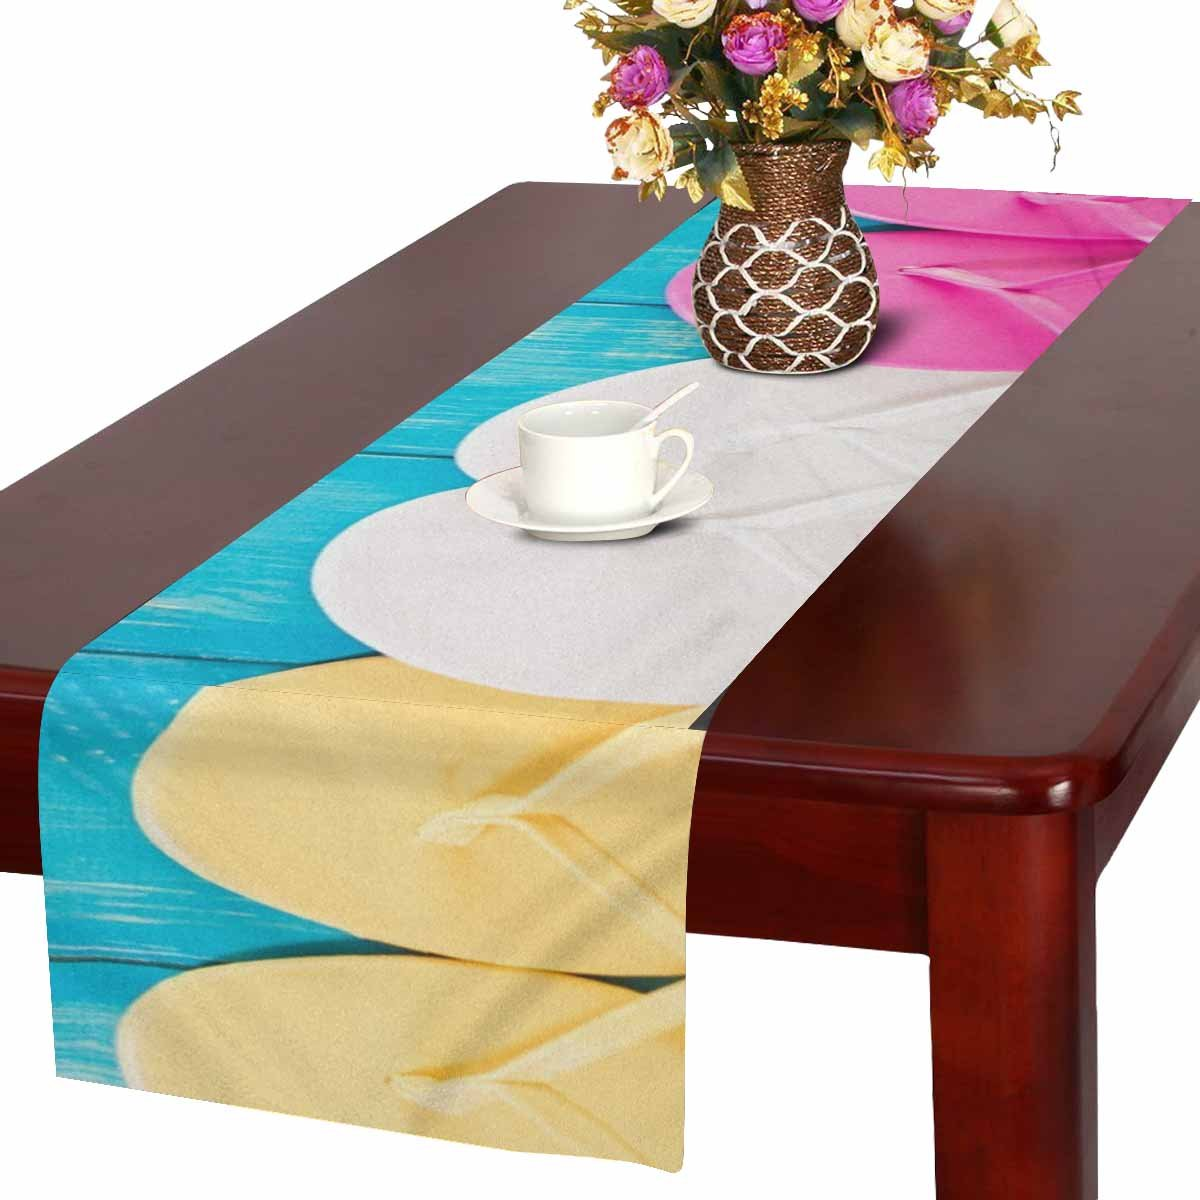 InterestPrint Bright Women's Flip Flops on a Wood Board Table Runner Cotton Linen Cloth Placemat for Office Kitchen Dining Wedding Party Banquet 16 x 72 Inches